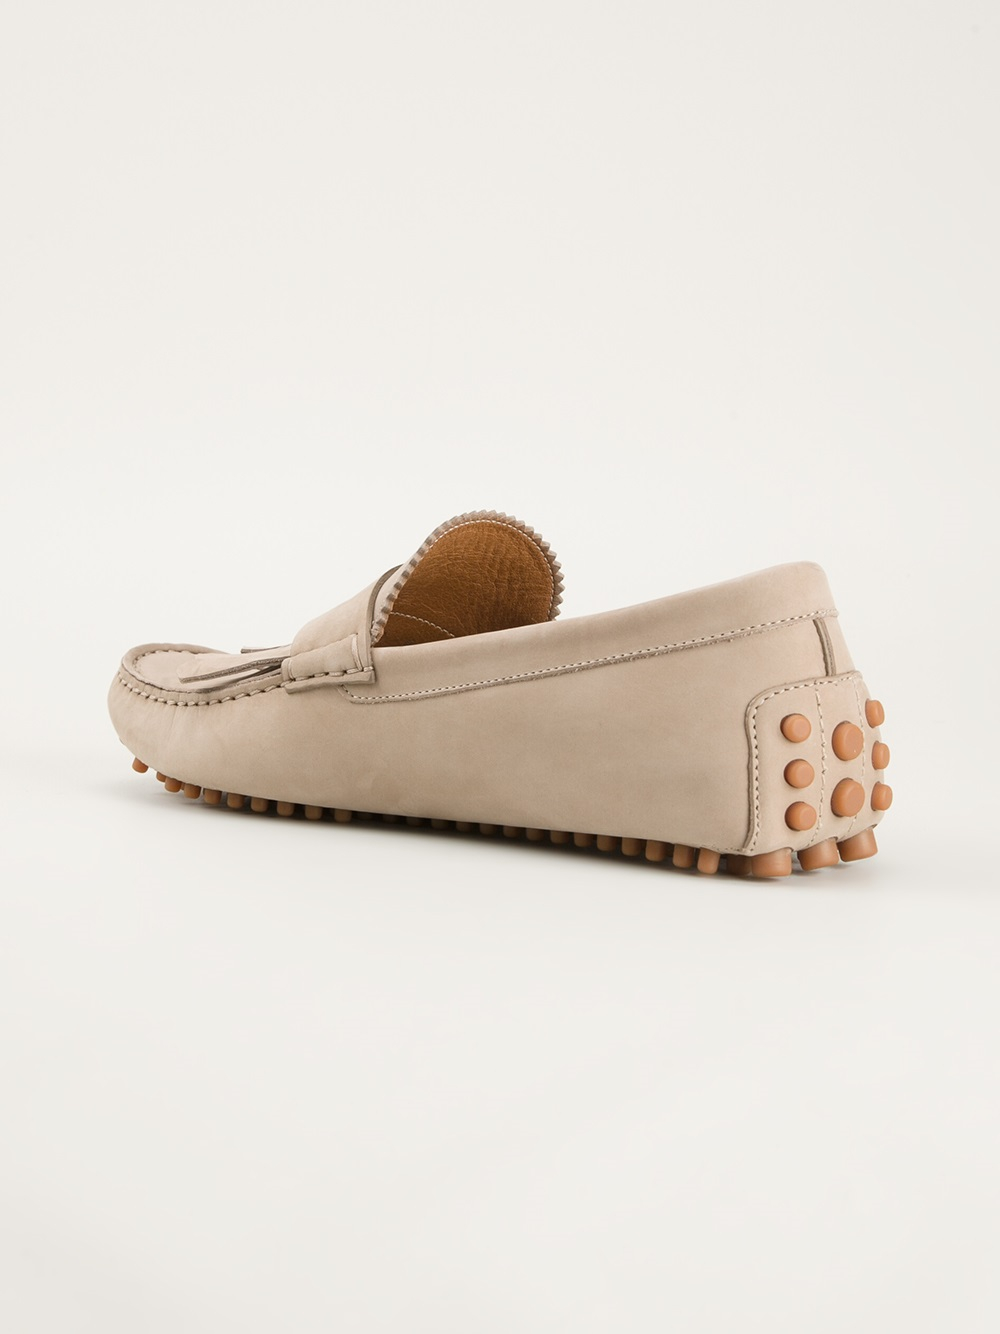 ca219138d14 Lyst - Gucci Fringed Loafers in Natural for Men